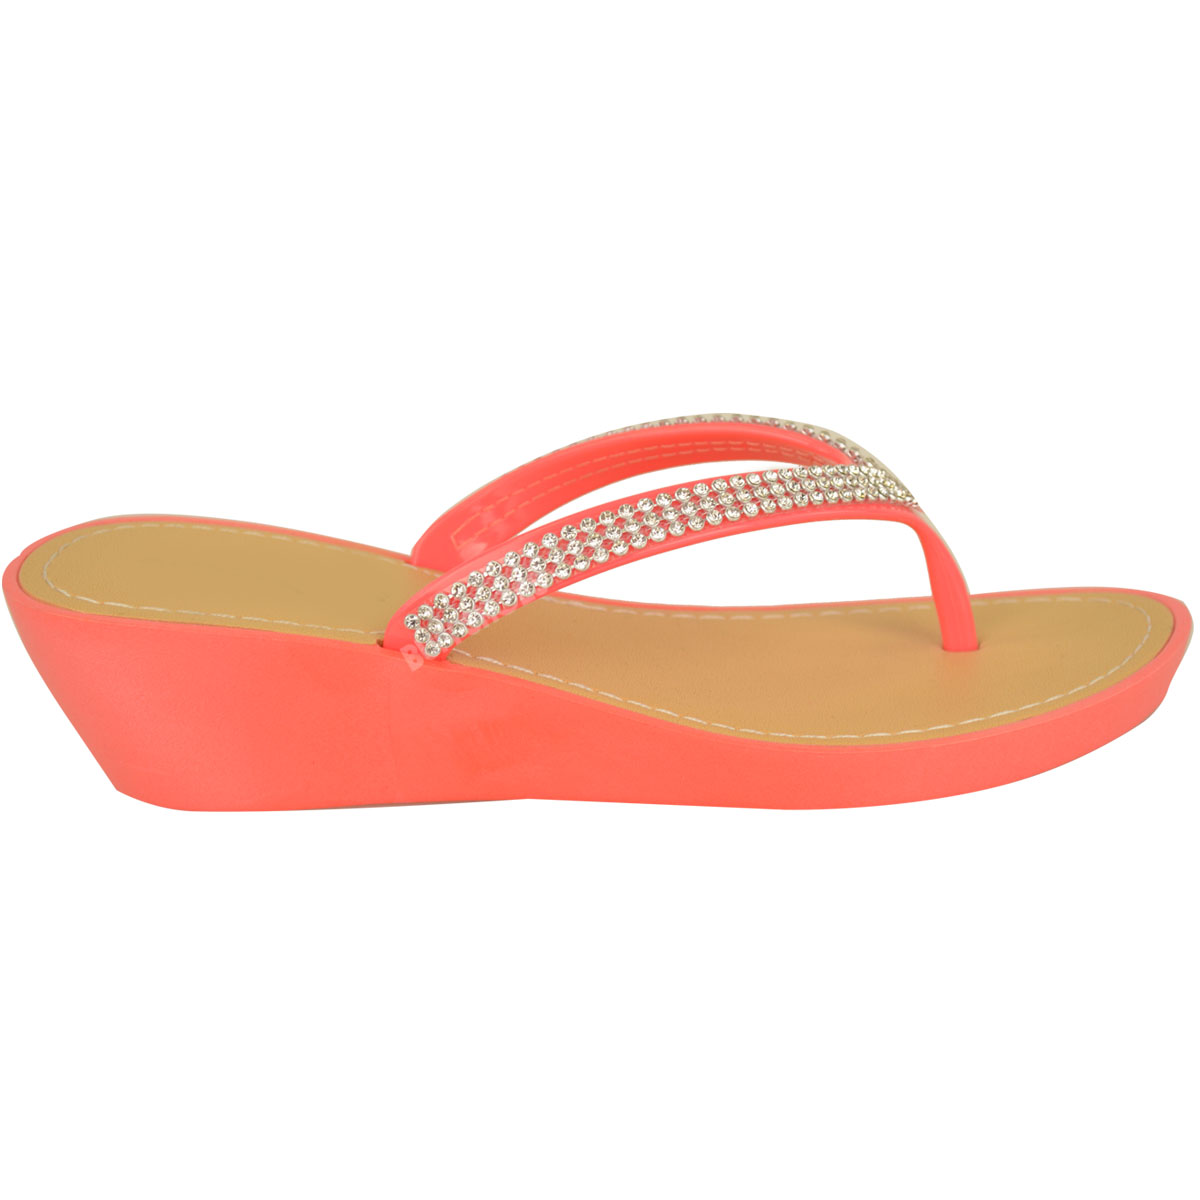 NEW-JELLY-SANDALS-WOMENS-LADIES-DIAMANTE-SUMMER-HOLIDAY-COMFORTS-FLIP-FLOPS-SIZE thumbnail 16